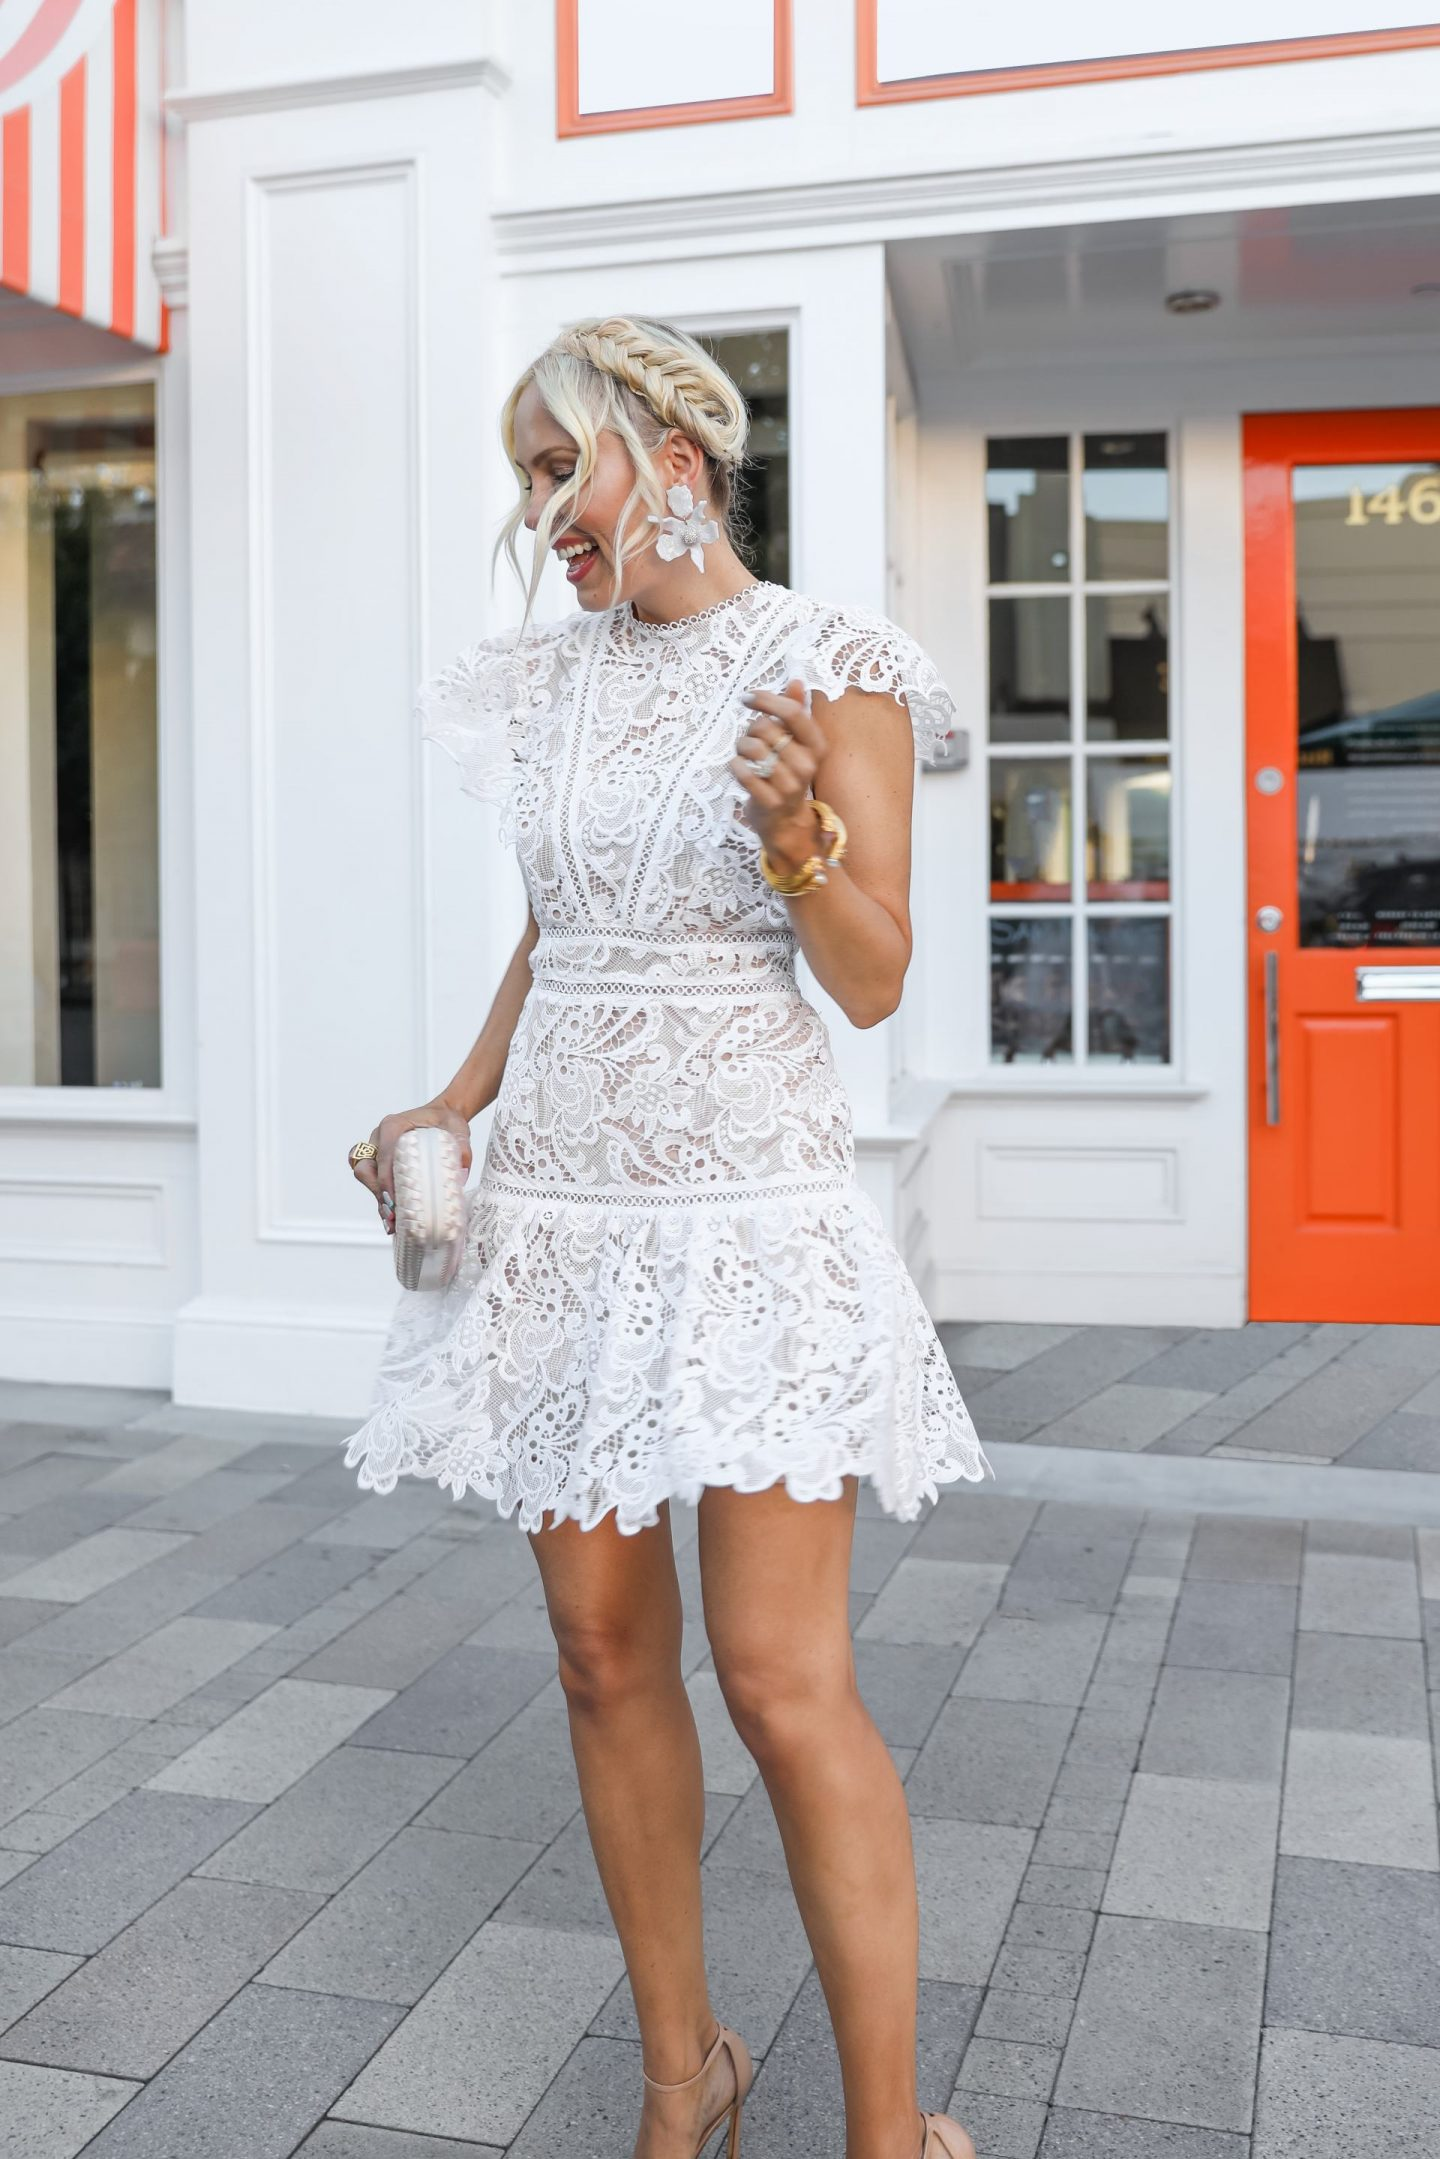 White dresses for summer style inspiration. Bridal shower. By Veronica Levy Lombard & Fifth.